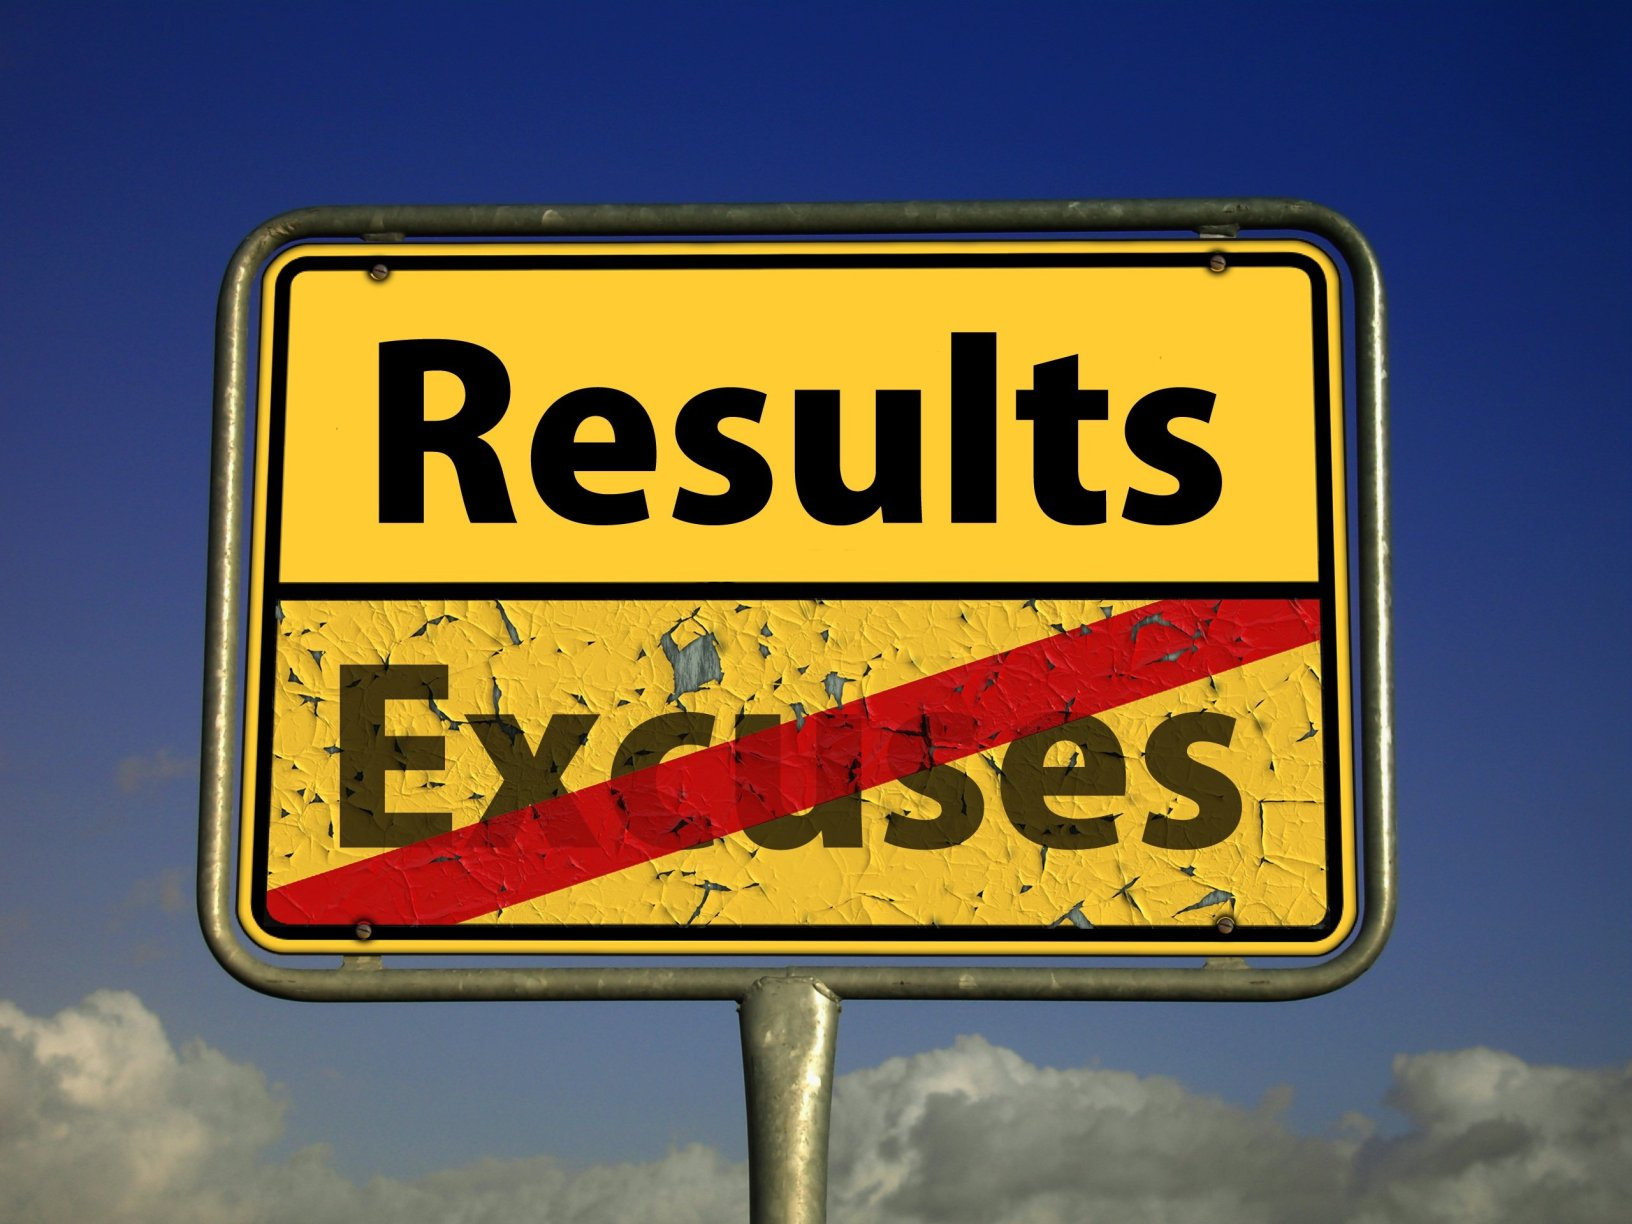 Image showing result over excuses road sign